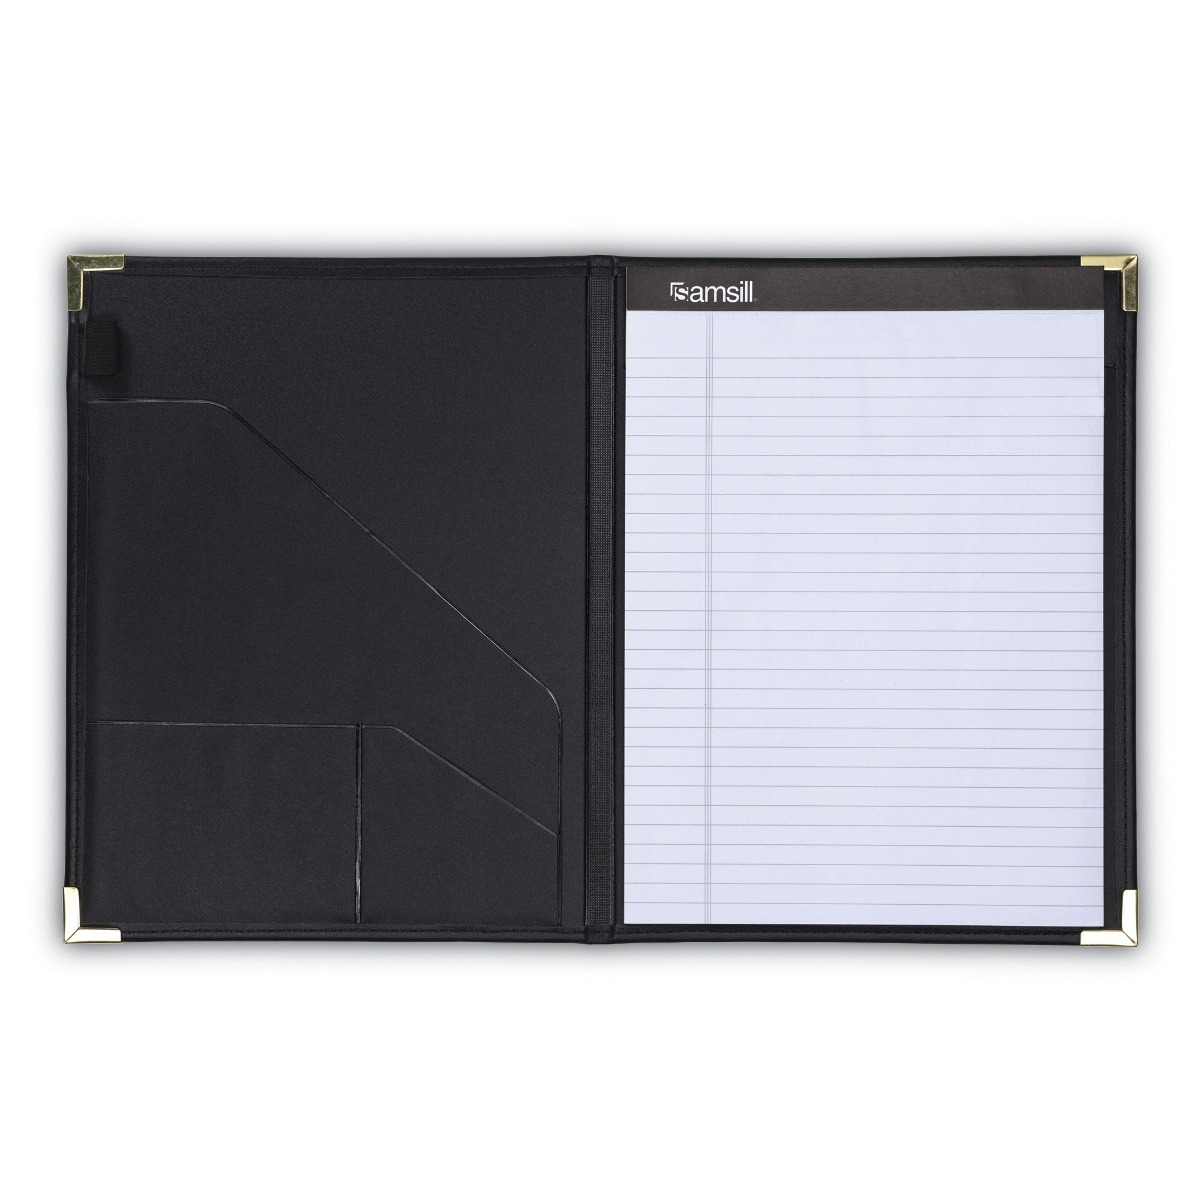 Samsill Classic Collection Portafolio De Negocio - Reanudar ...